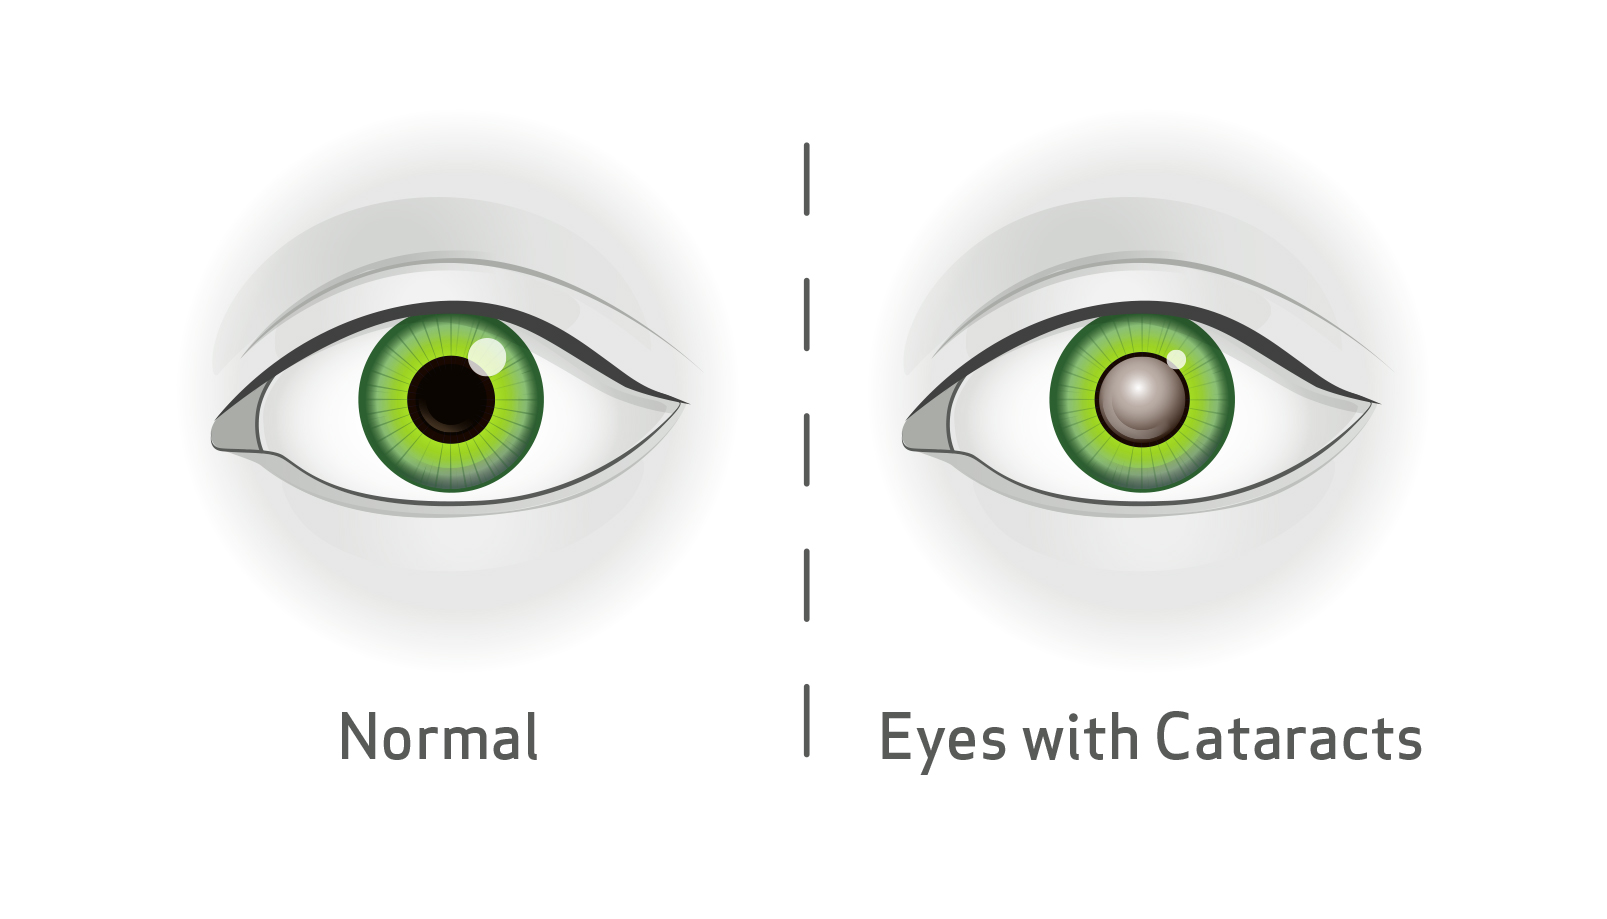 Blink Vision Cataract diagram, left showing normal eye, right showing eye with cataracts